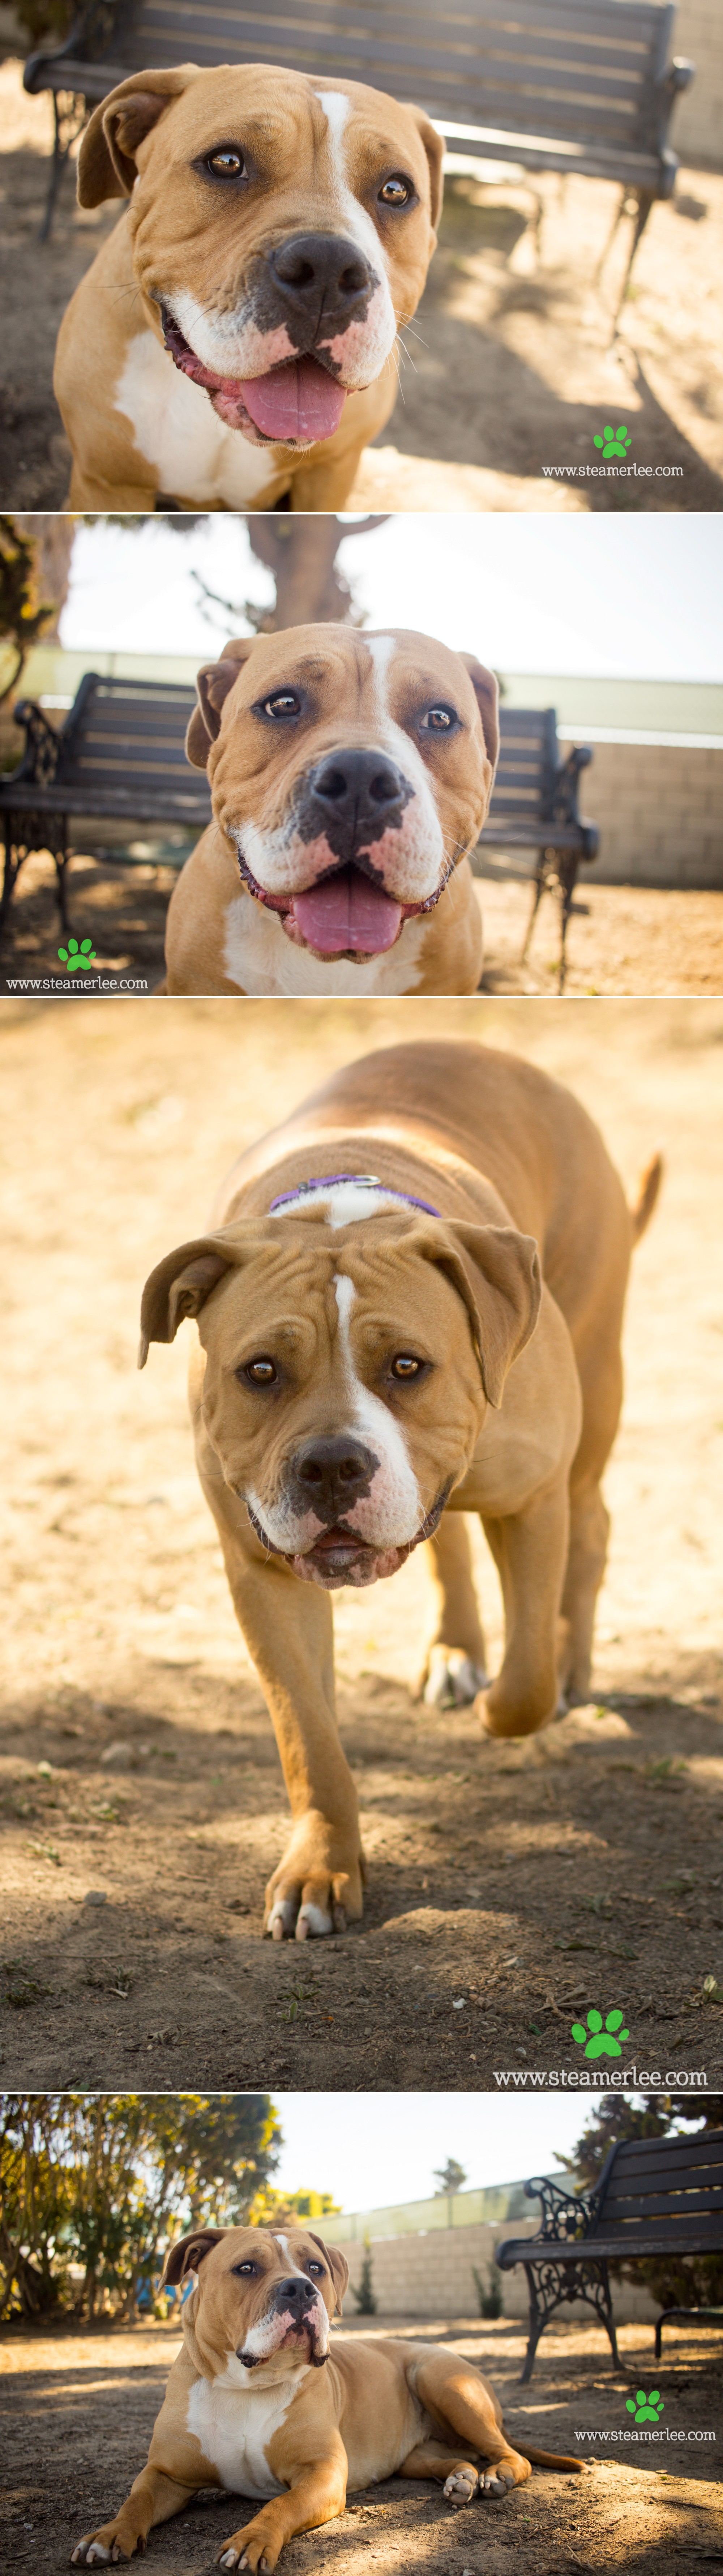 18 Steamer Lee Dog Photography - Seal Beach Animal Care Center.JPG